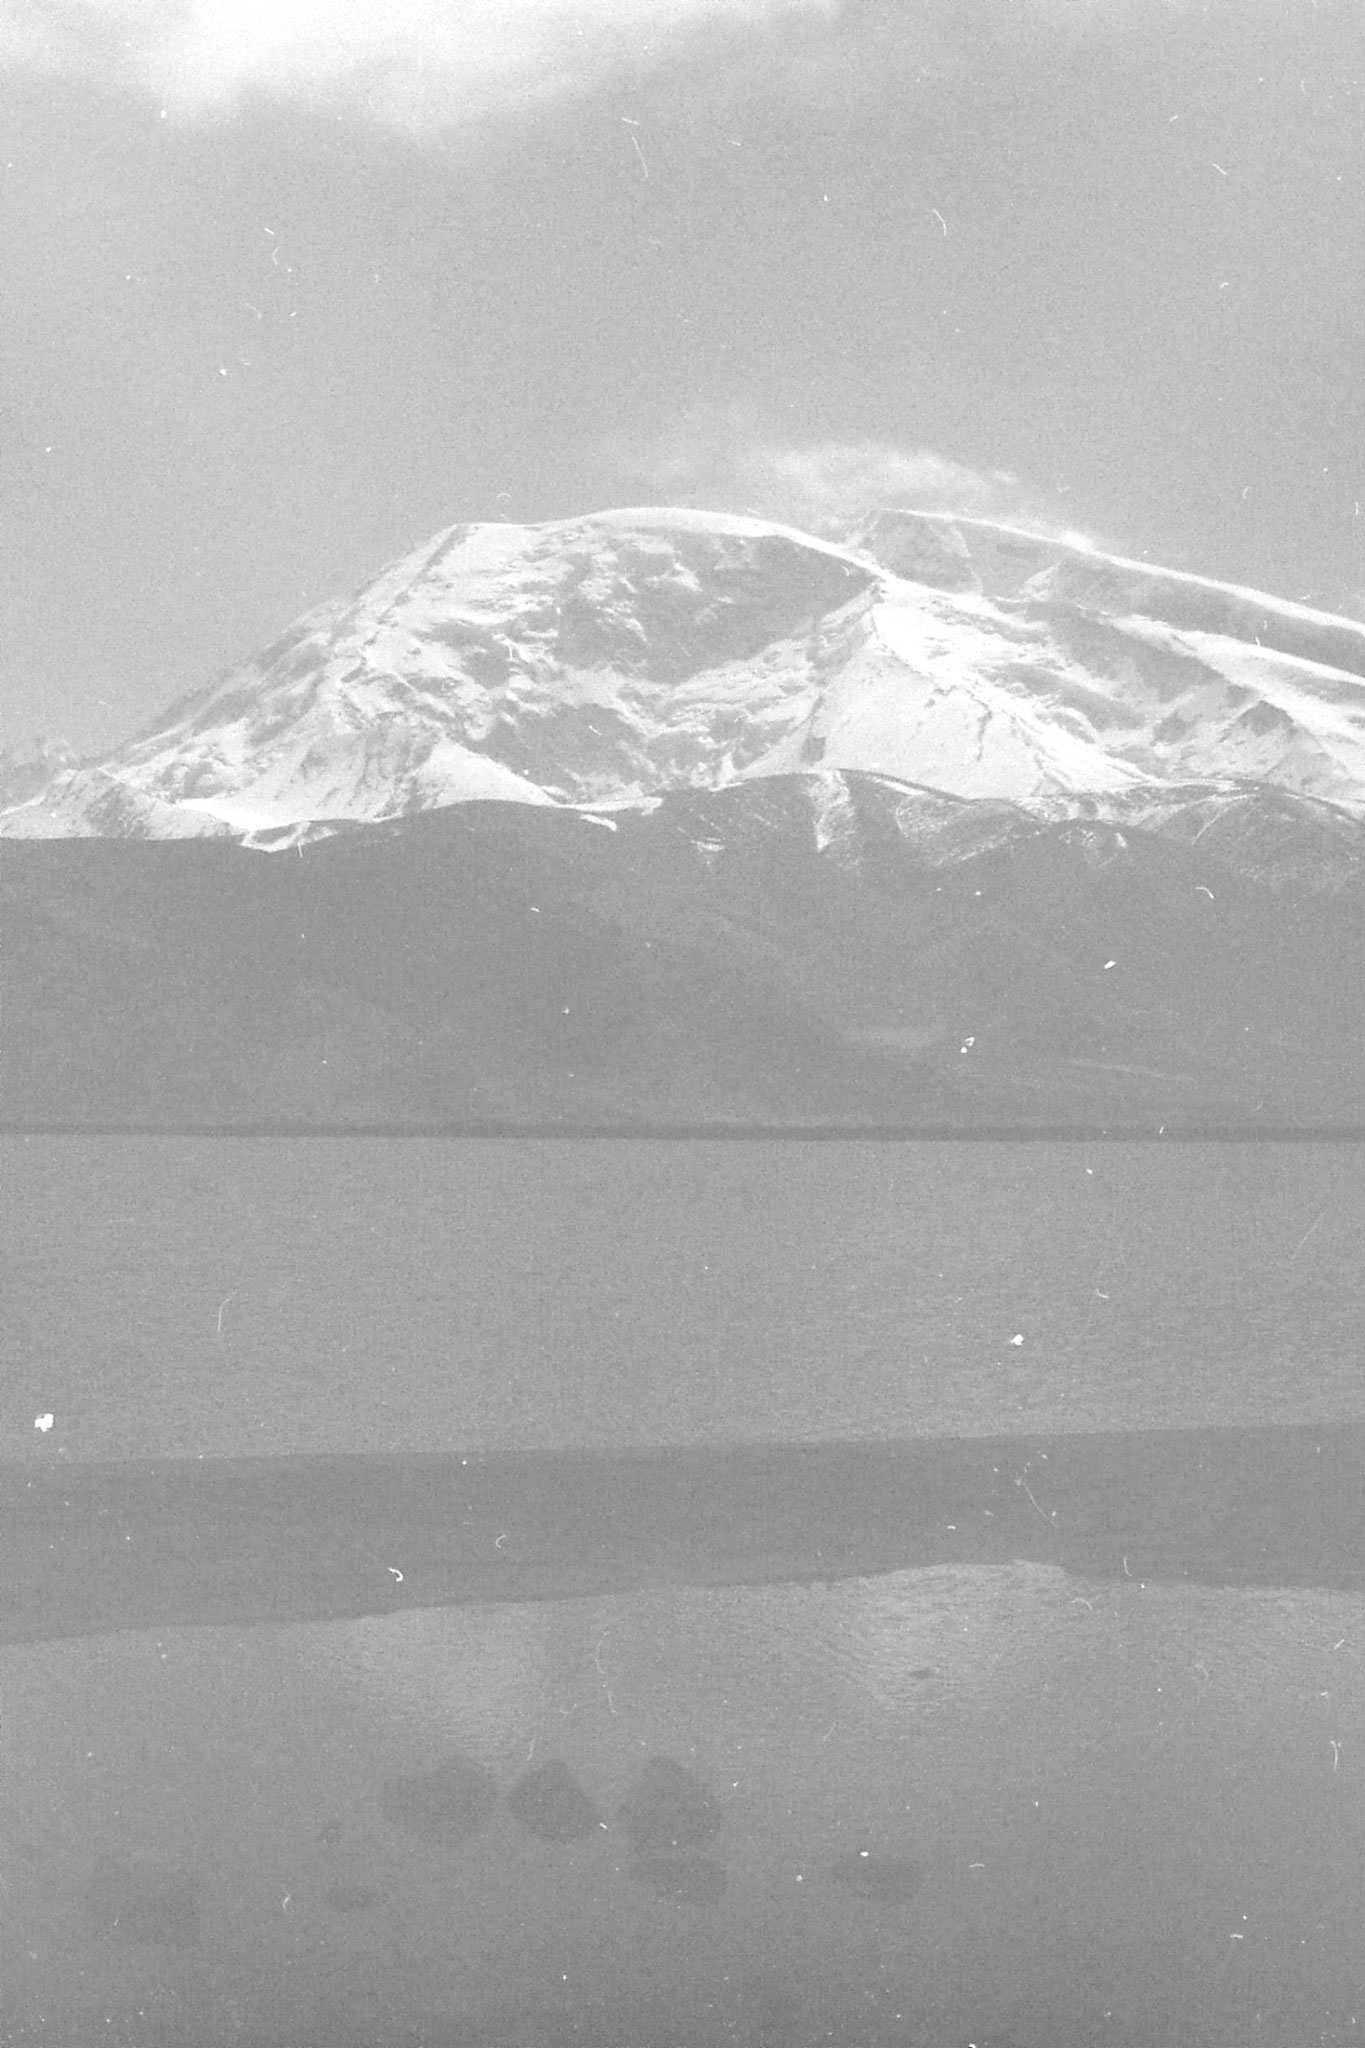 10/9/1989: 3: Lake Karakul